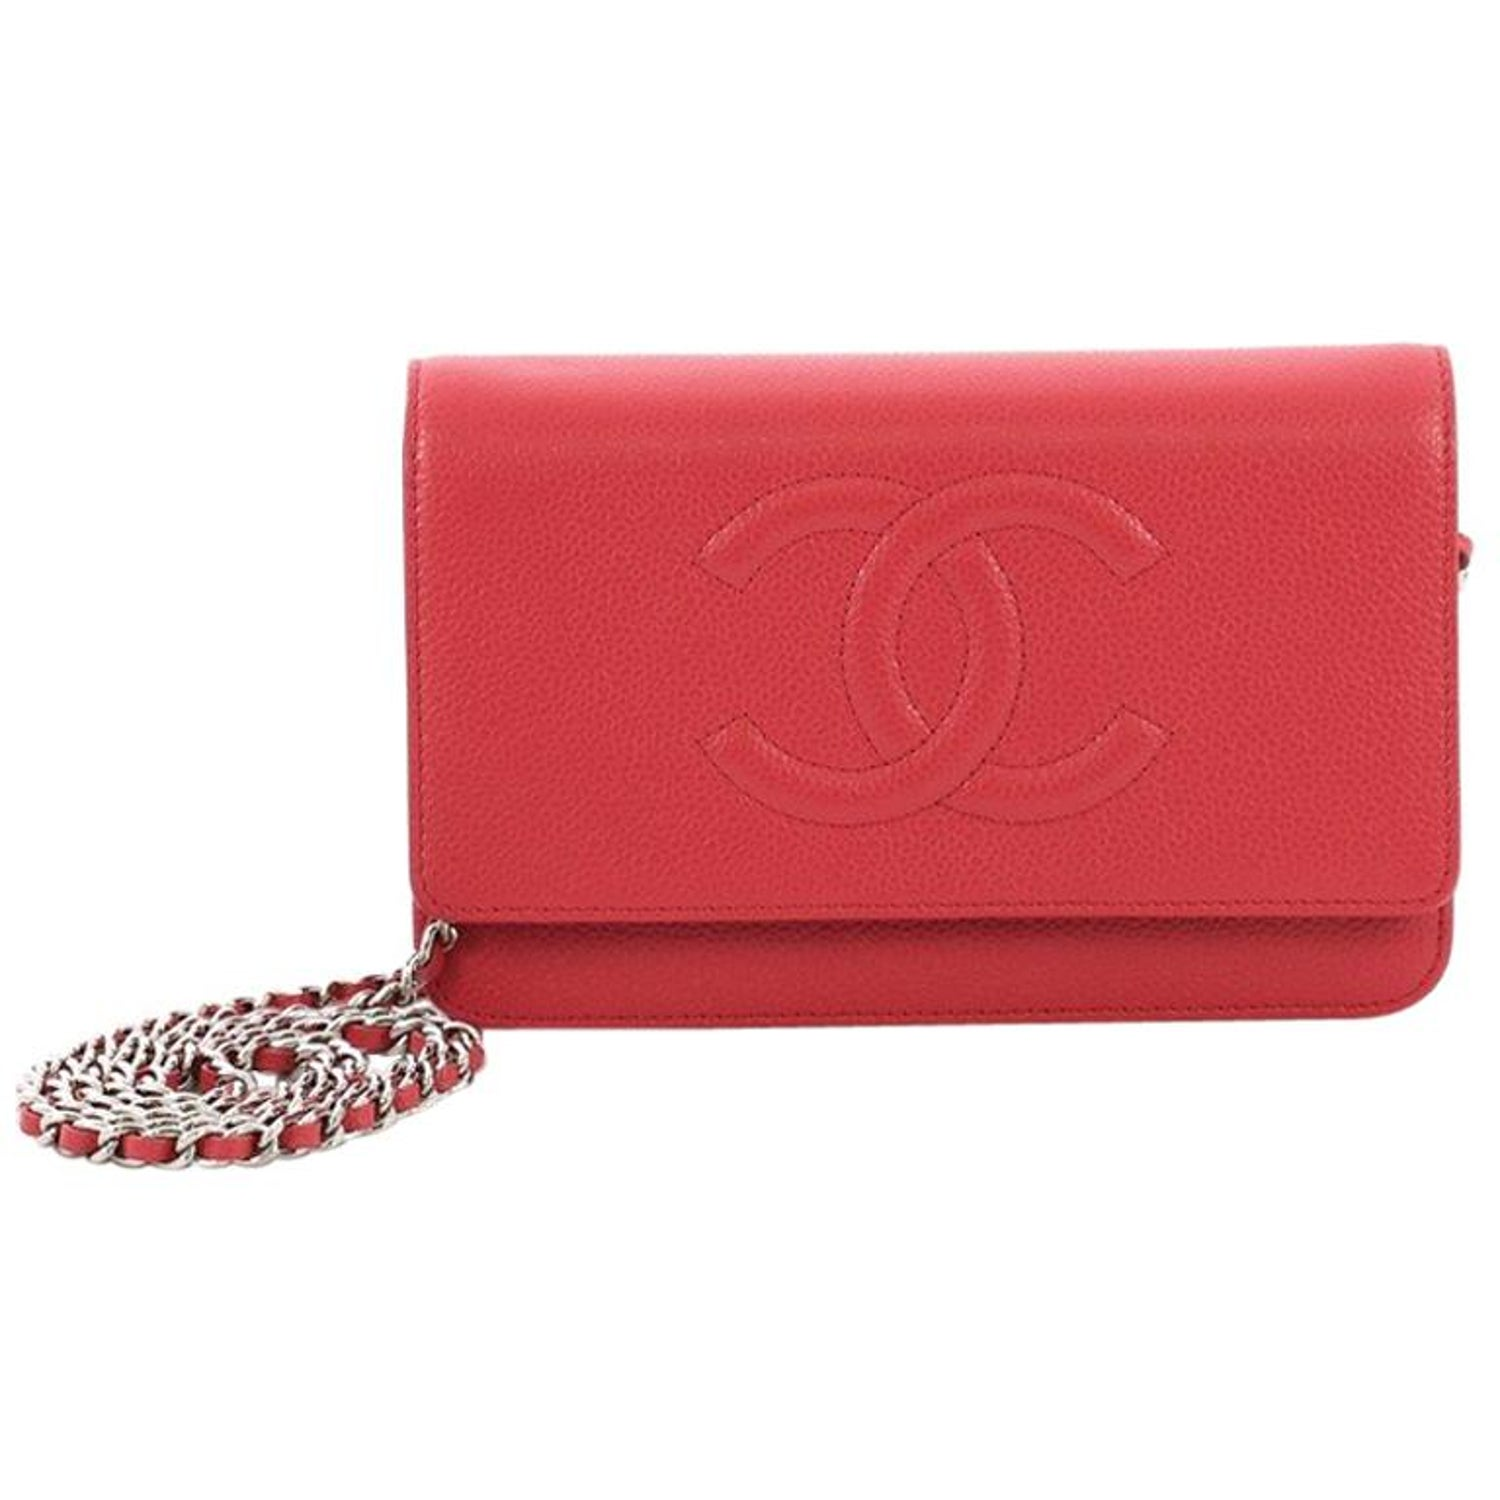 6fa88e7ab92d Chanel Timeless Wallet on Chain Caviar at 1stdibs